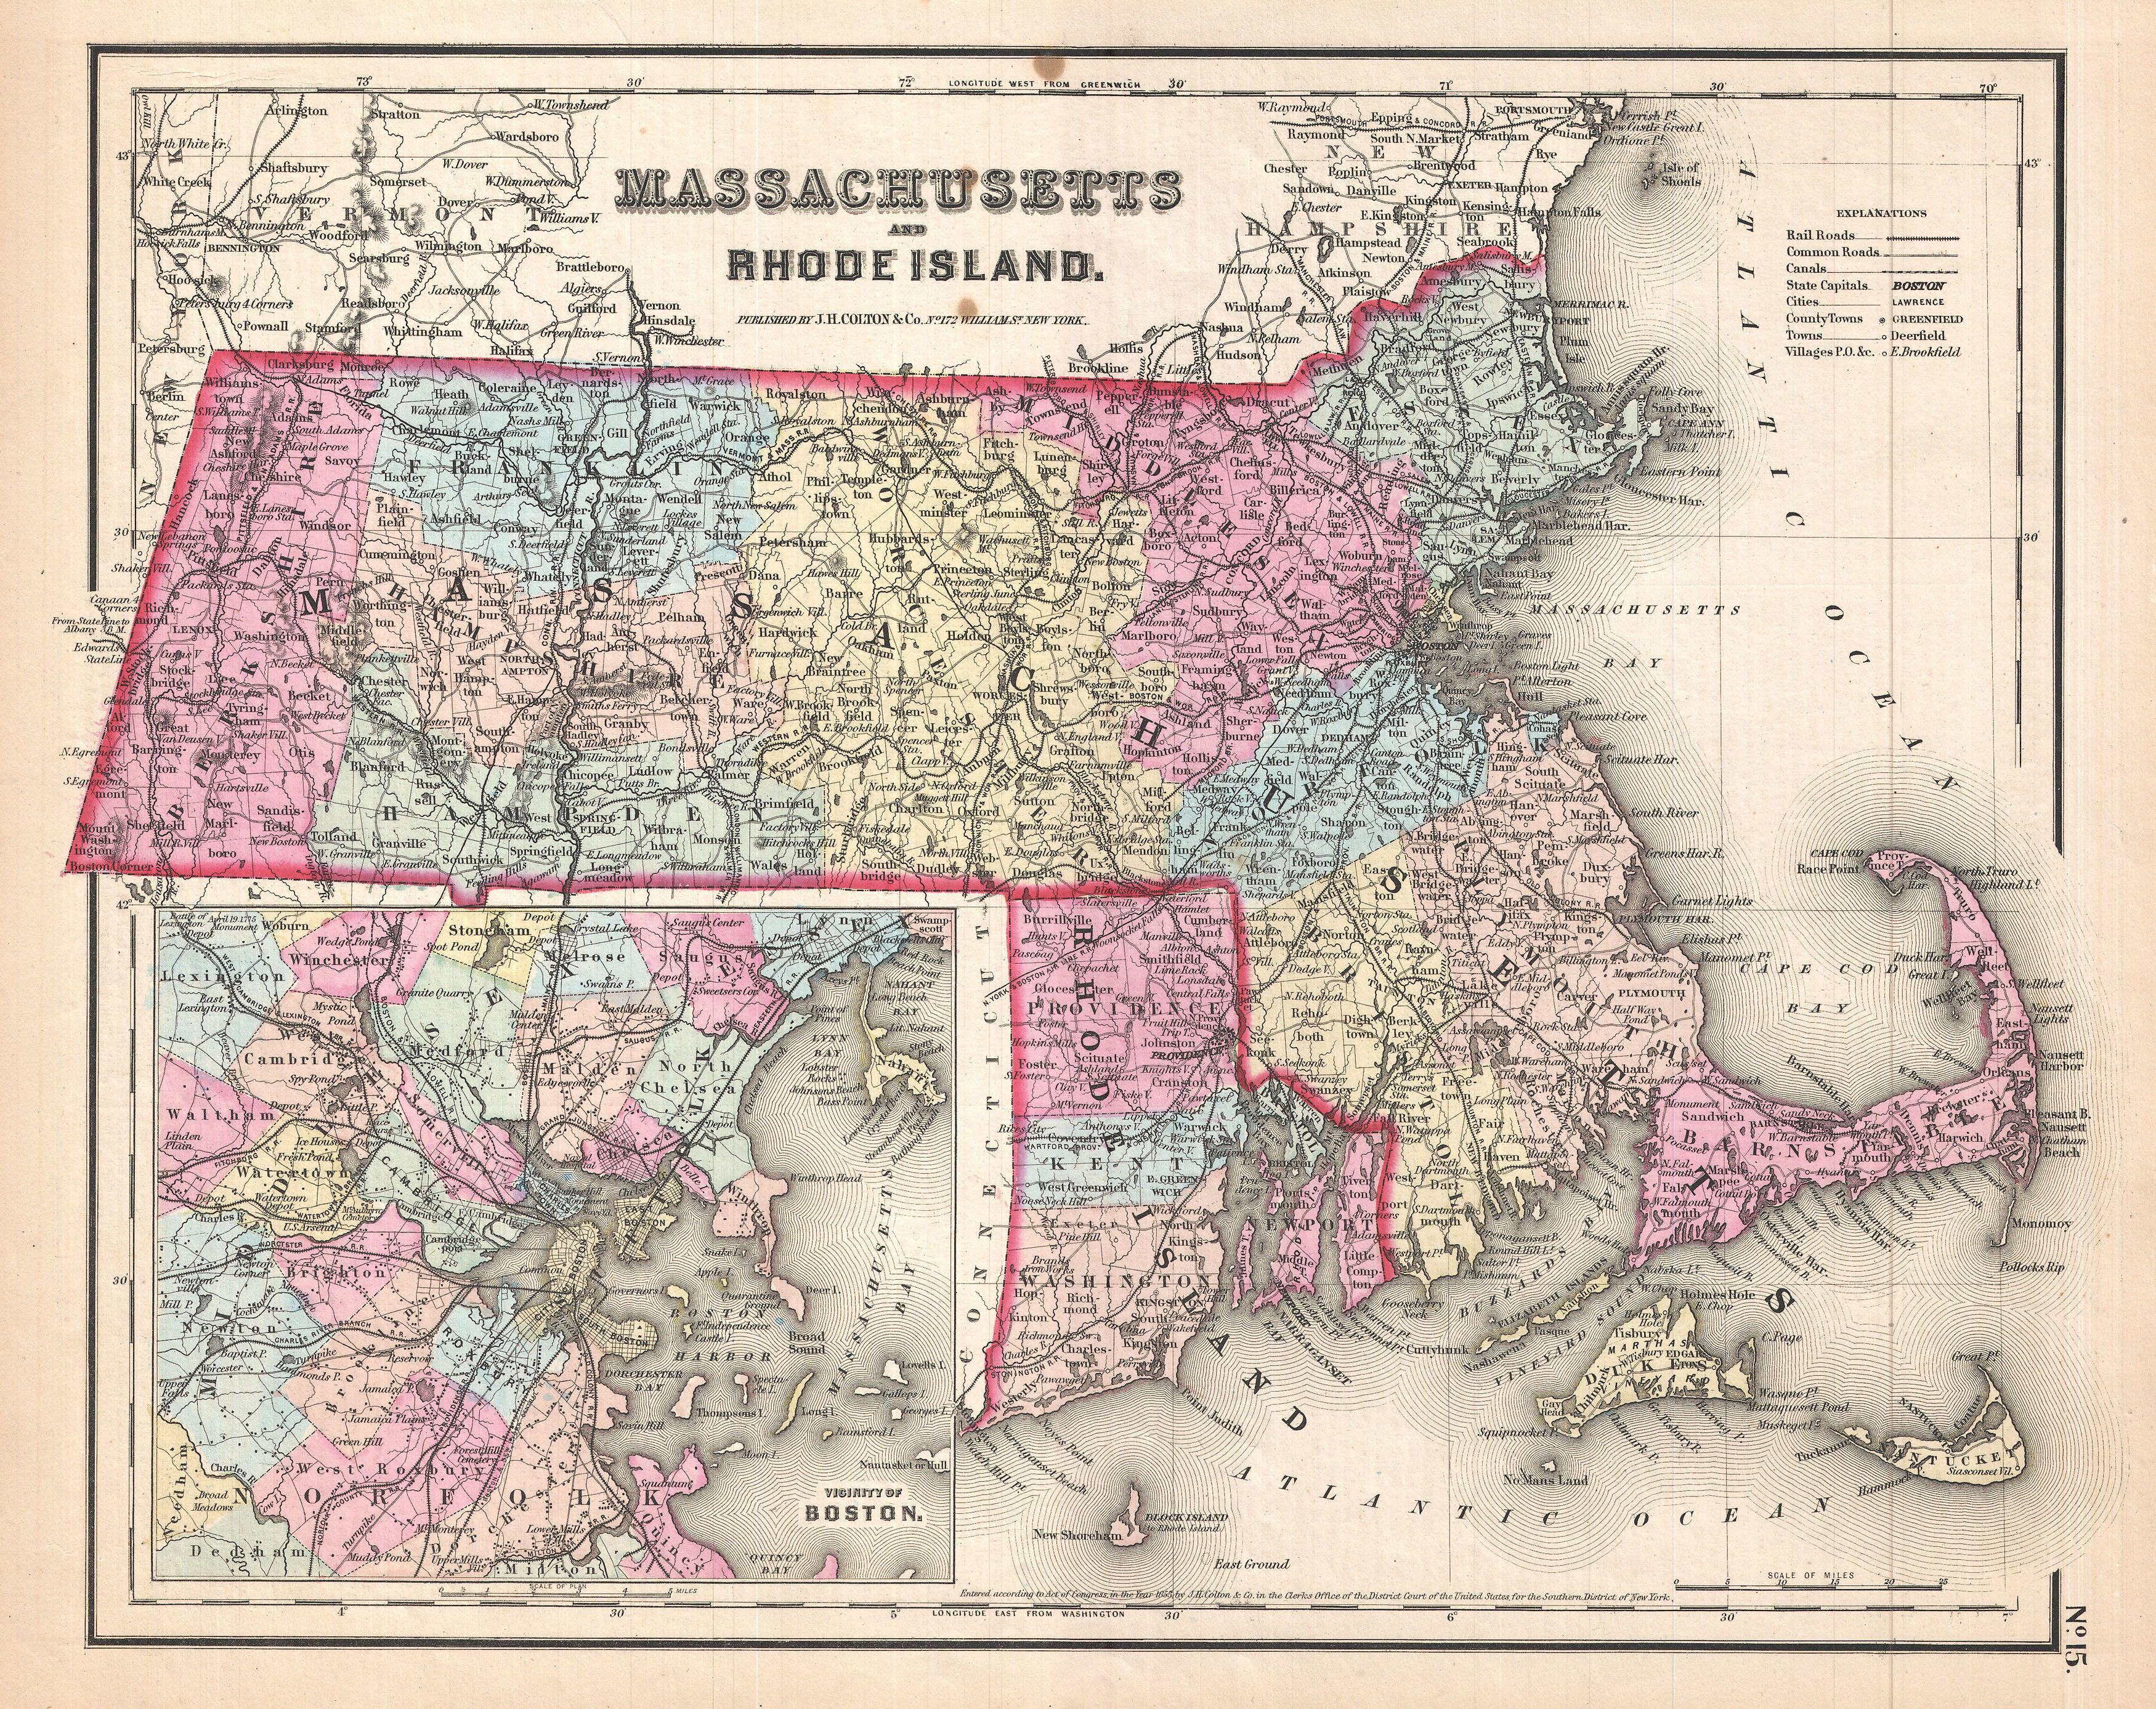 Rhode Island Historical Features